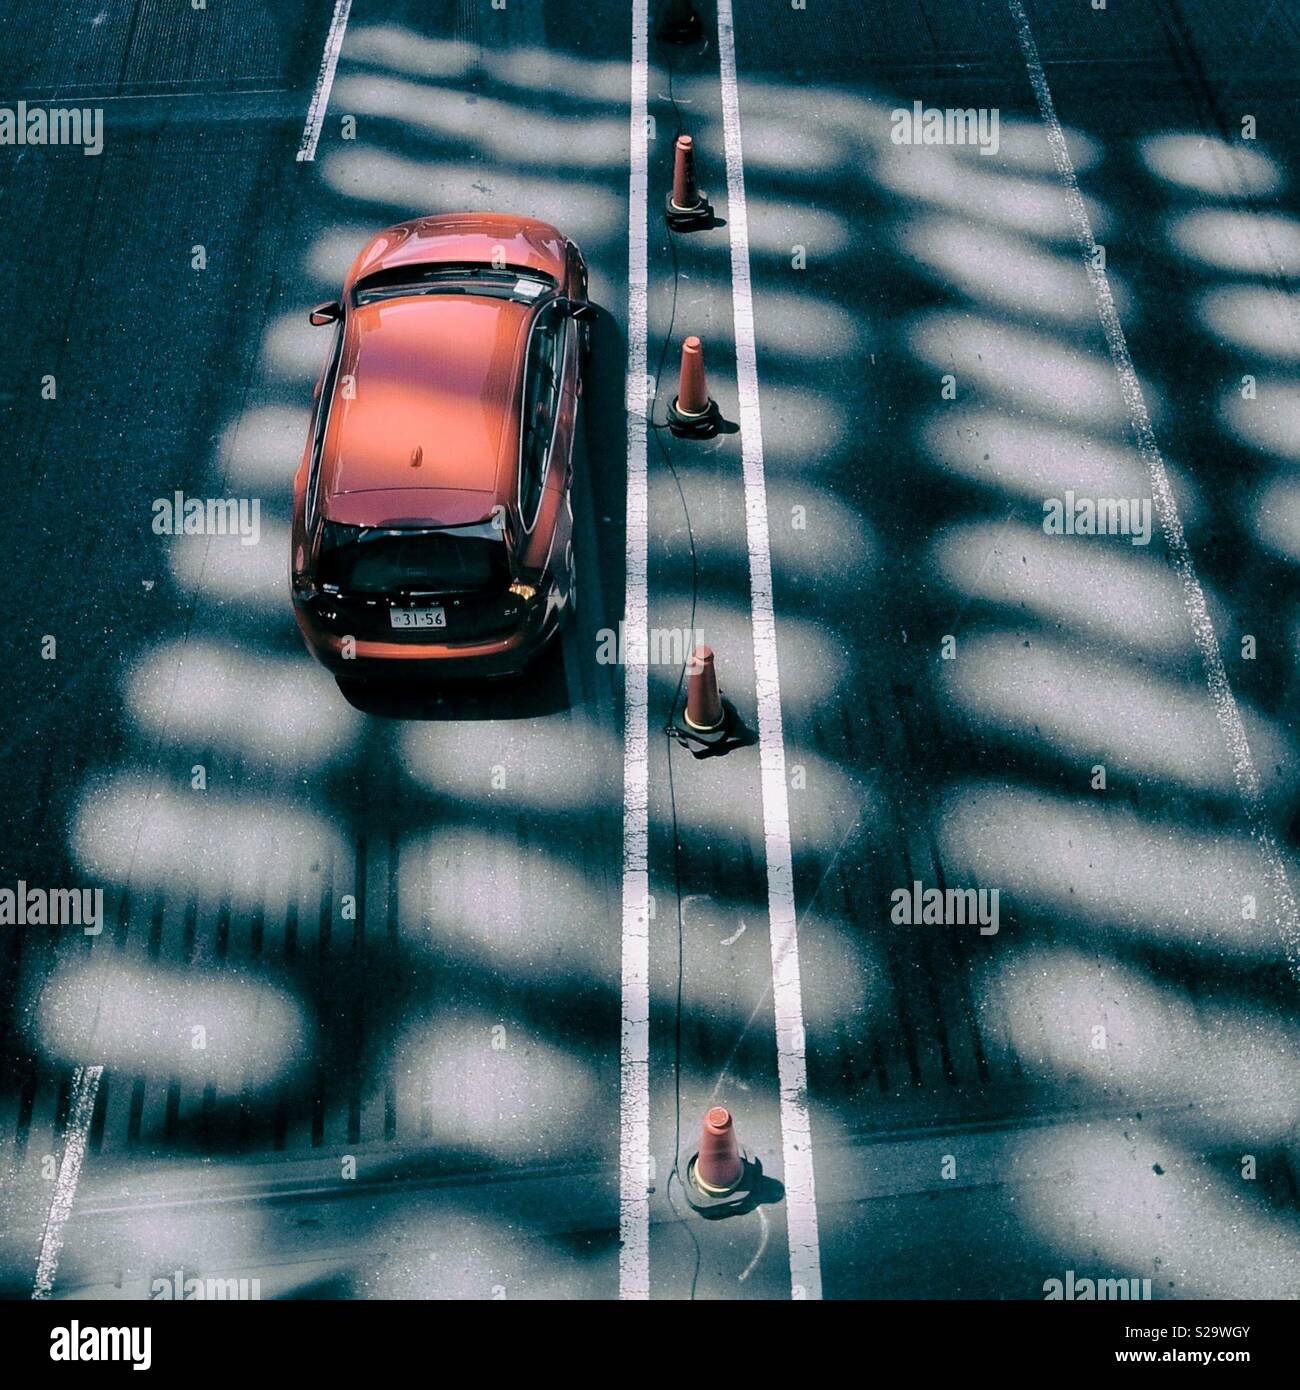 A red car passes road cones and shadows. Overhead perspective - Stock Image